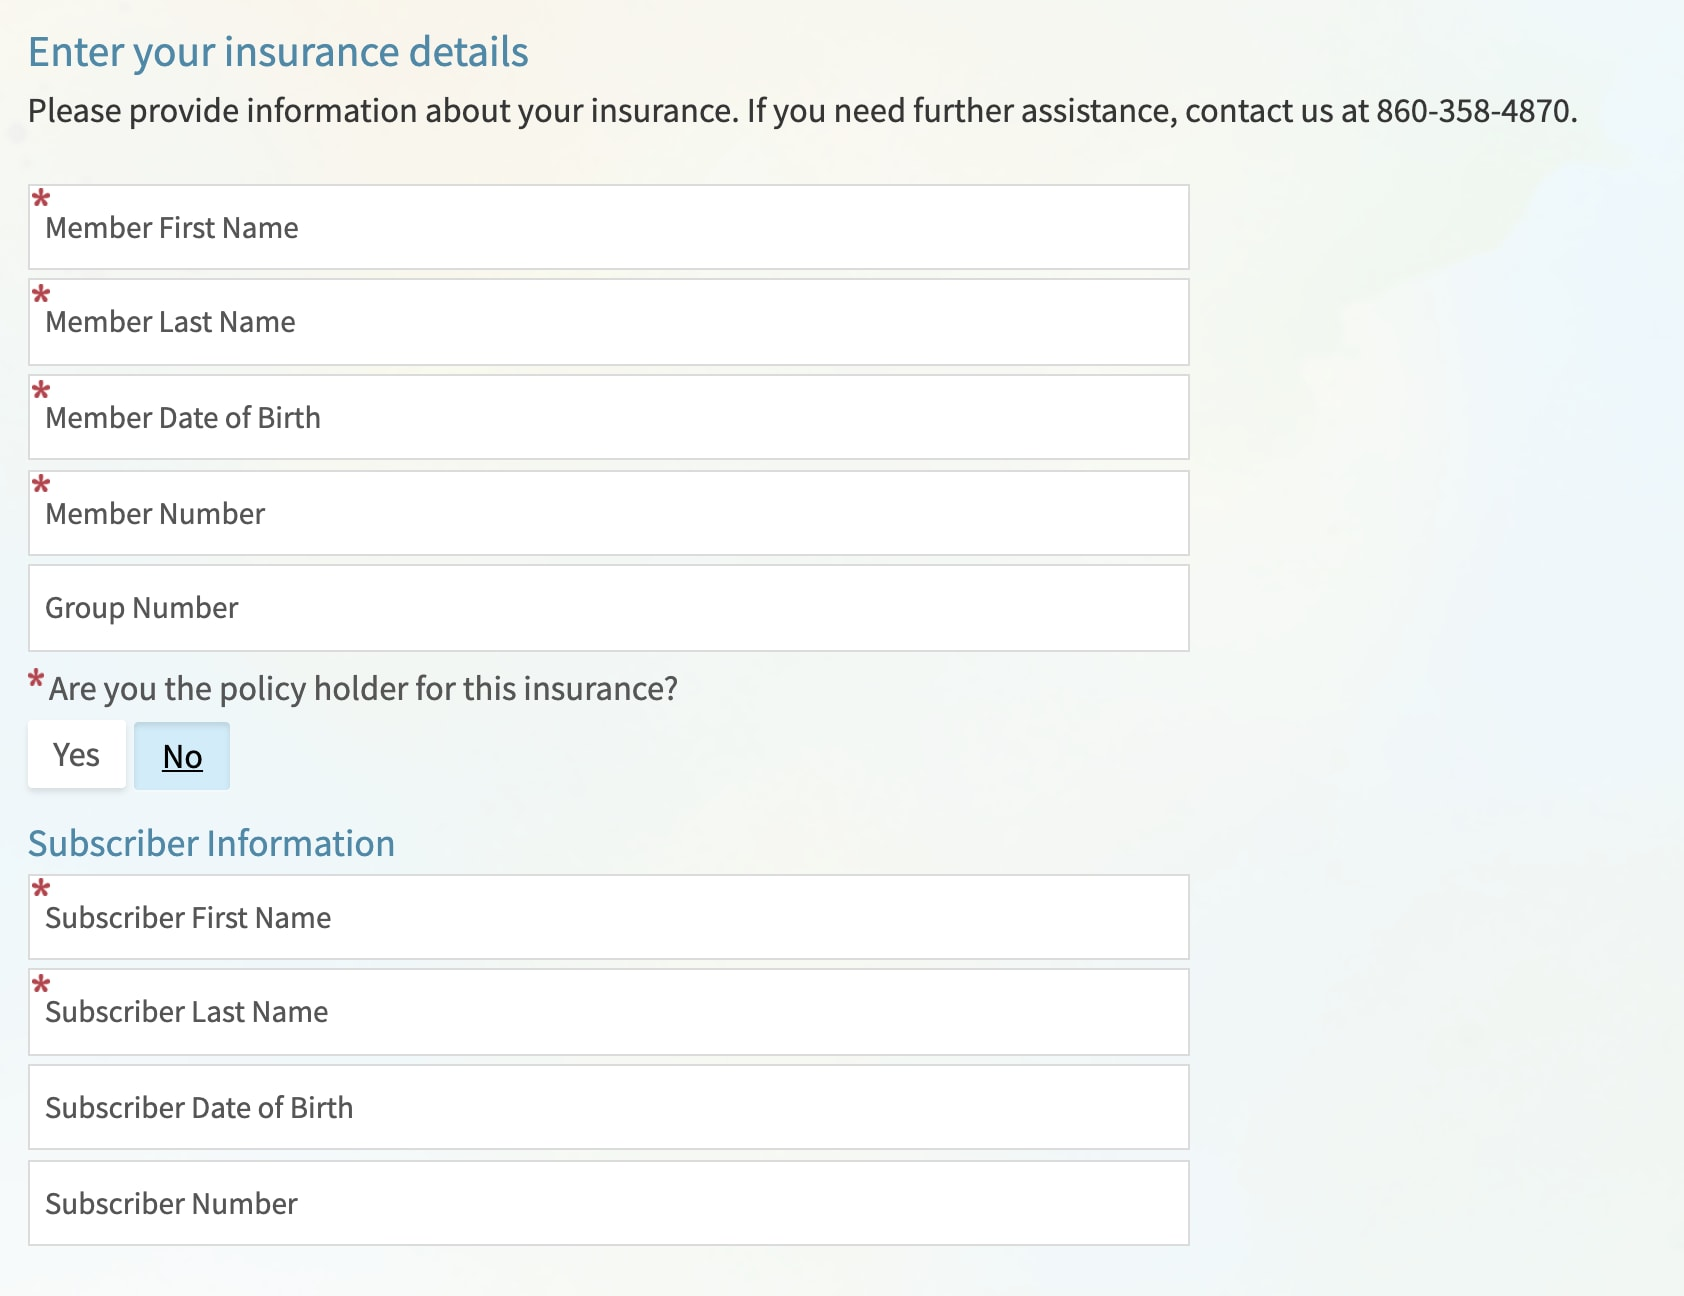 Image of insurance detail fields in Price Estimator tool.